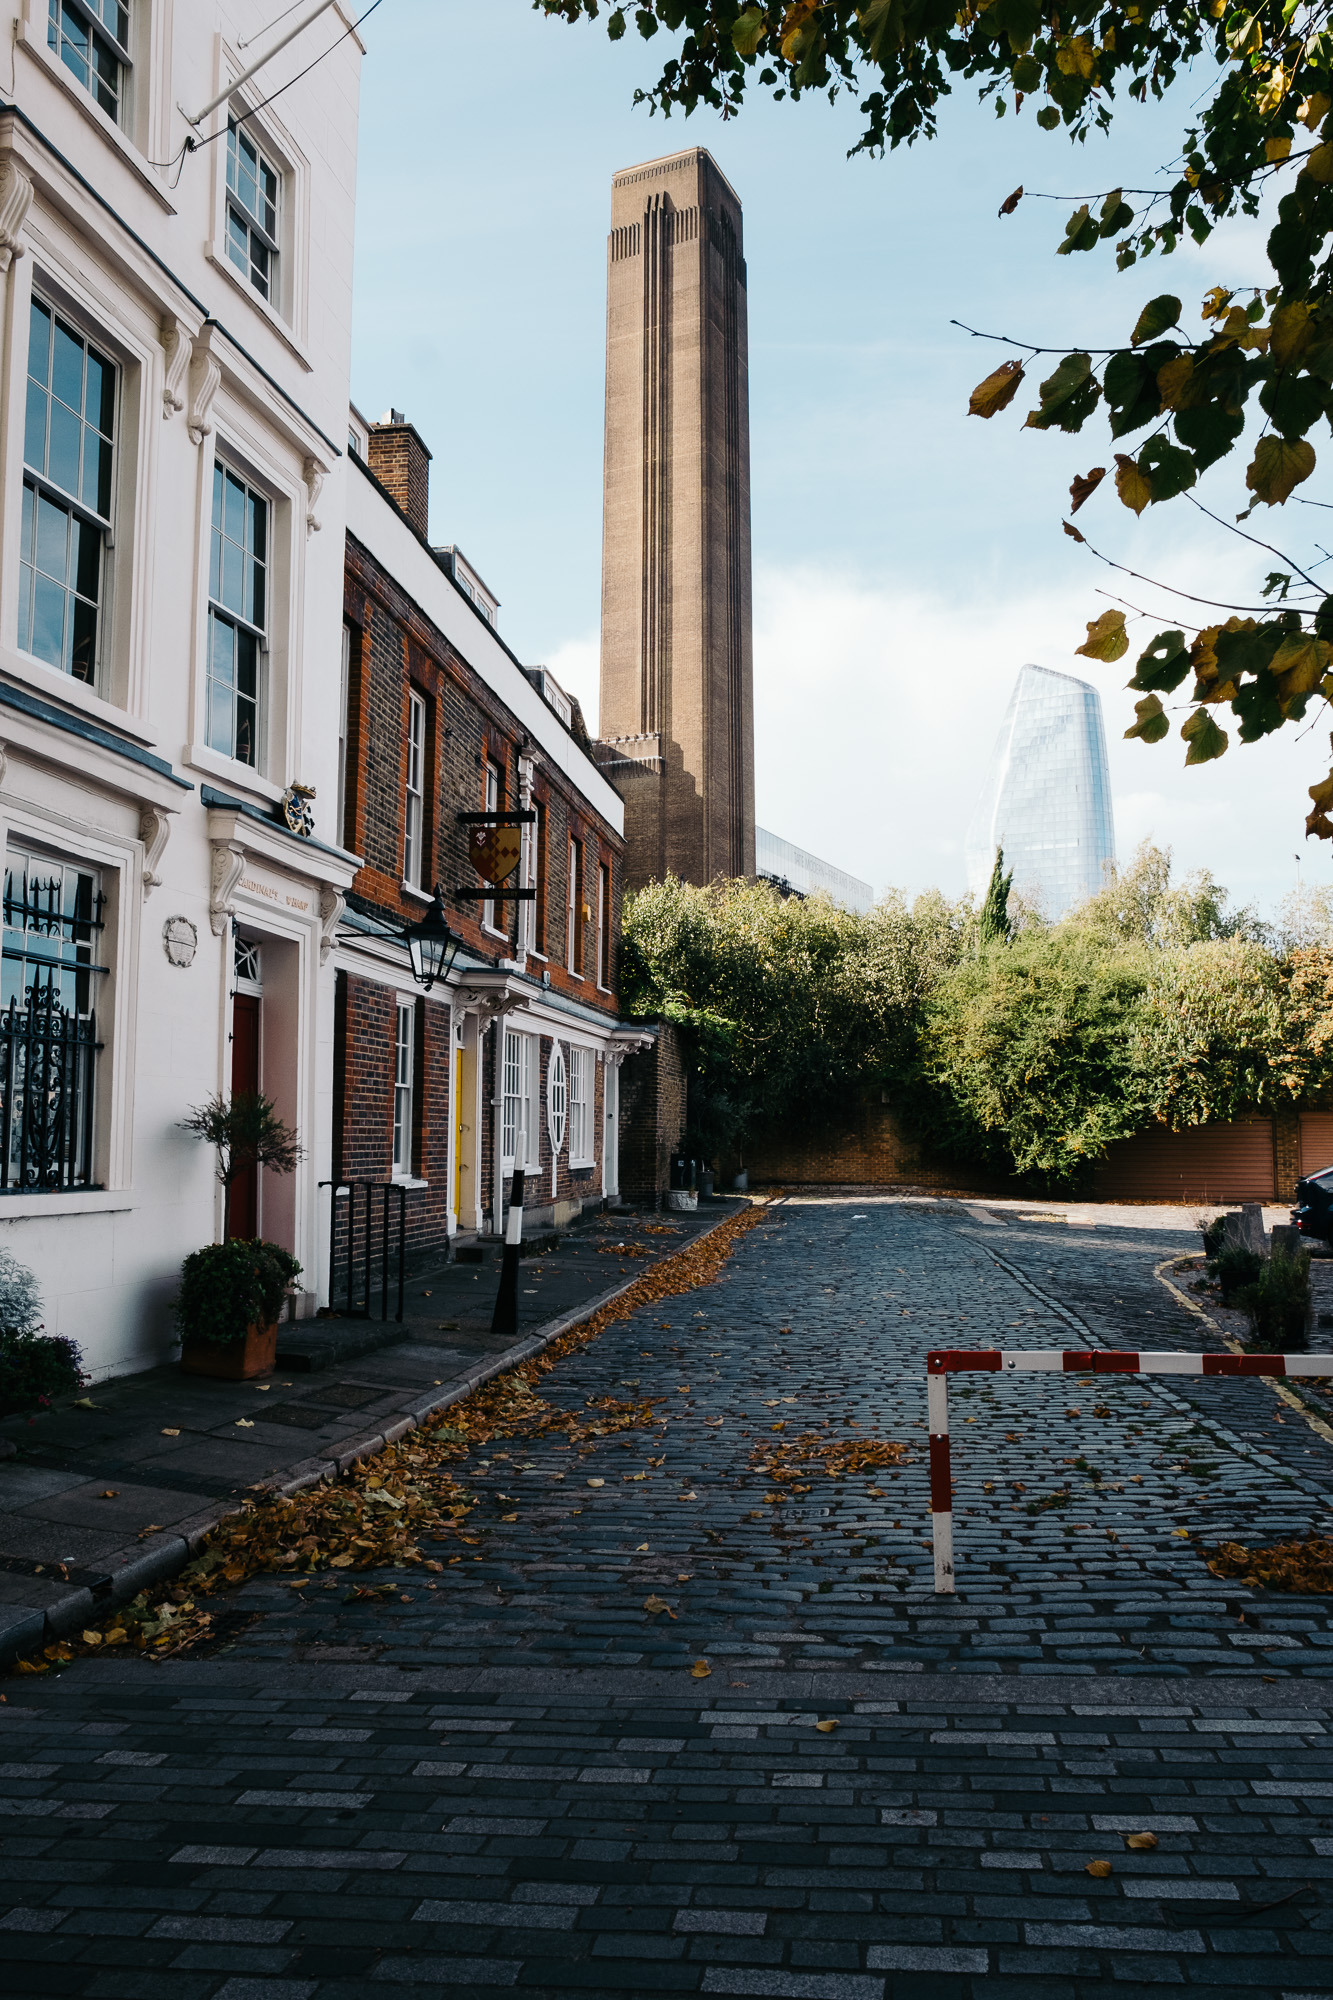 Looking towards the Tate Modern © Andrew Newson